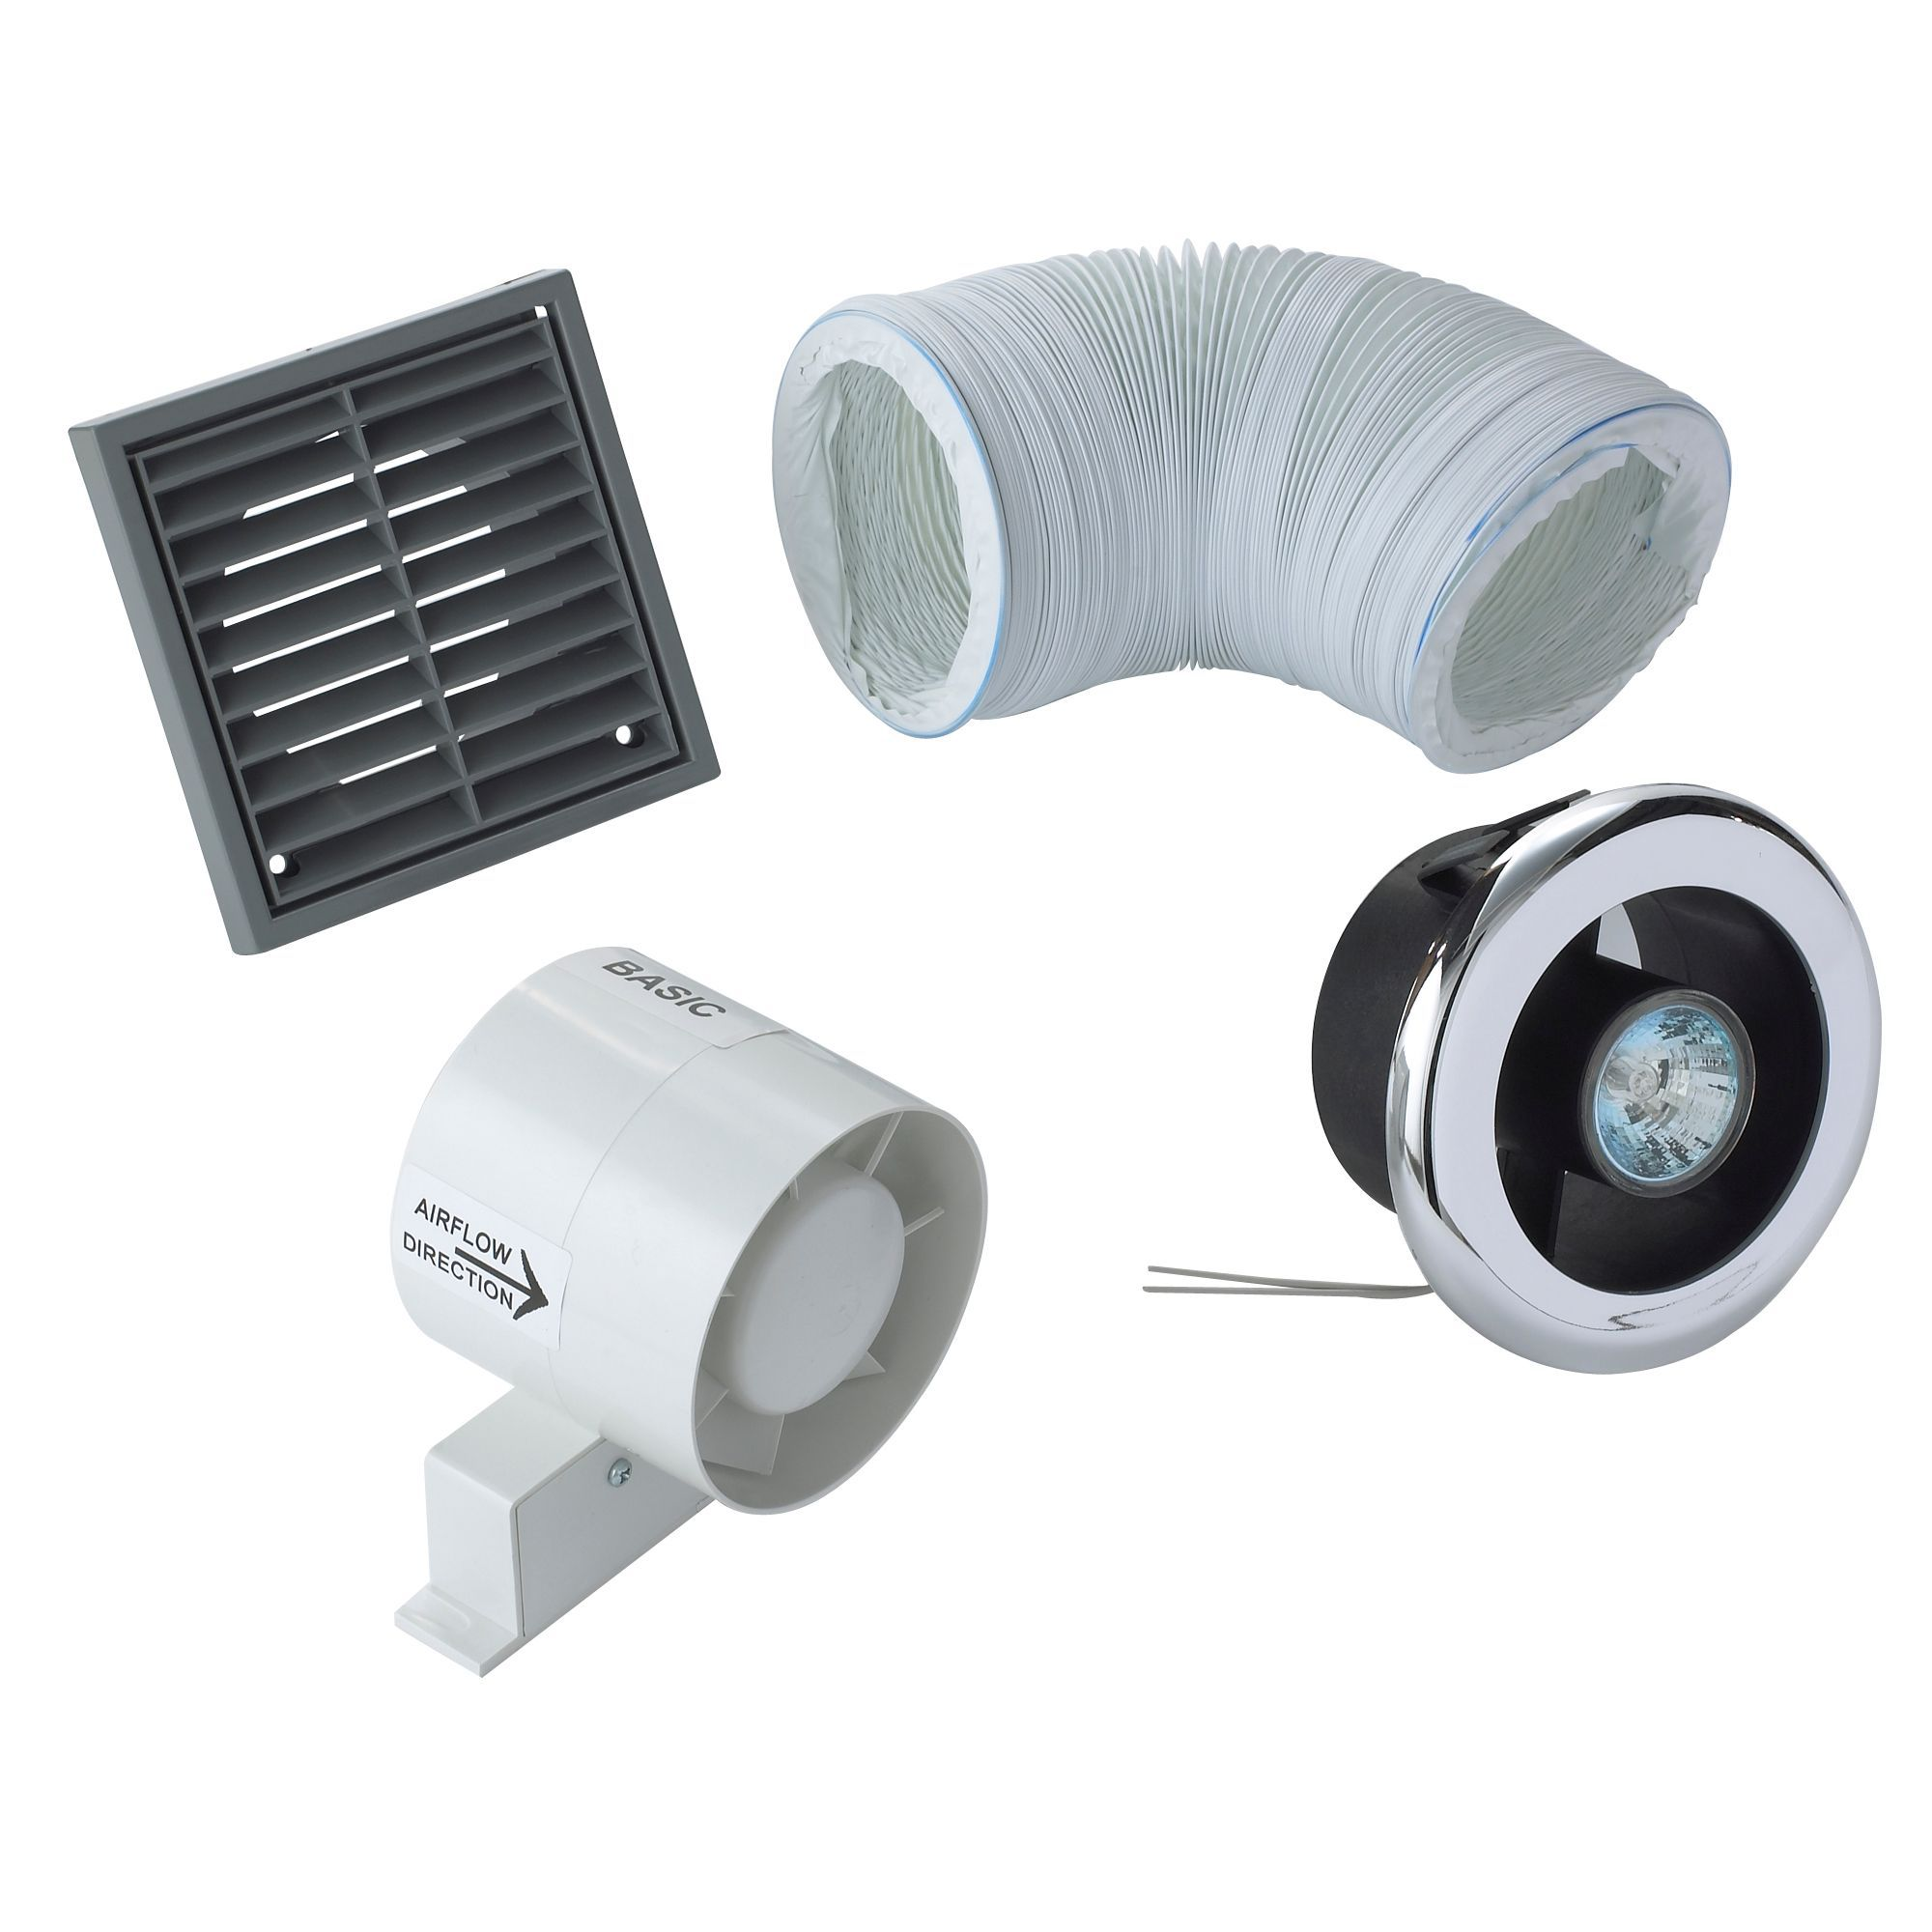 Manrose vdisl100s shower light bathroom extractor fan kit - Bathroom ceiling extractor fan with light ...